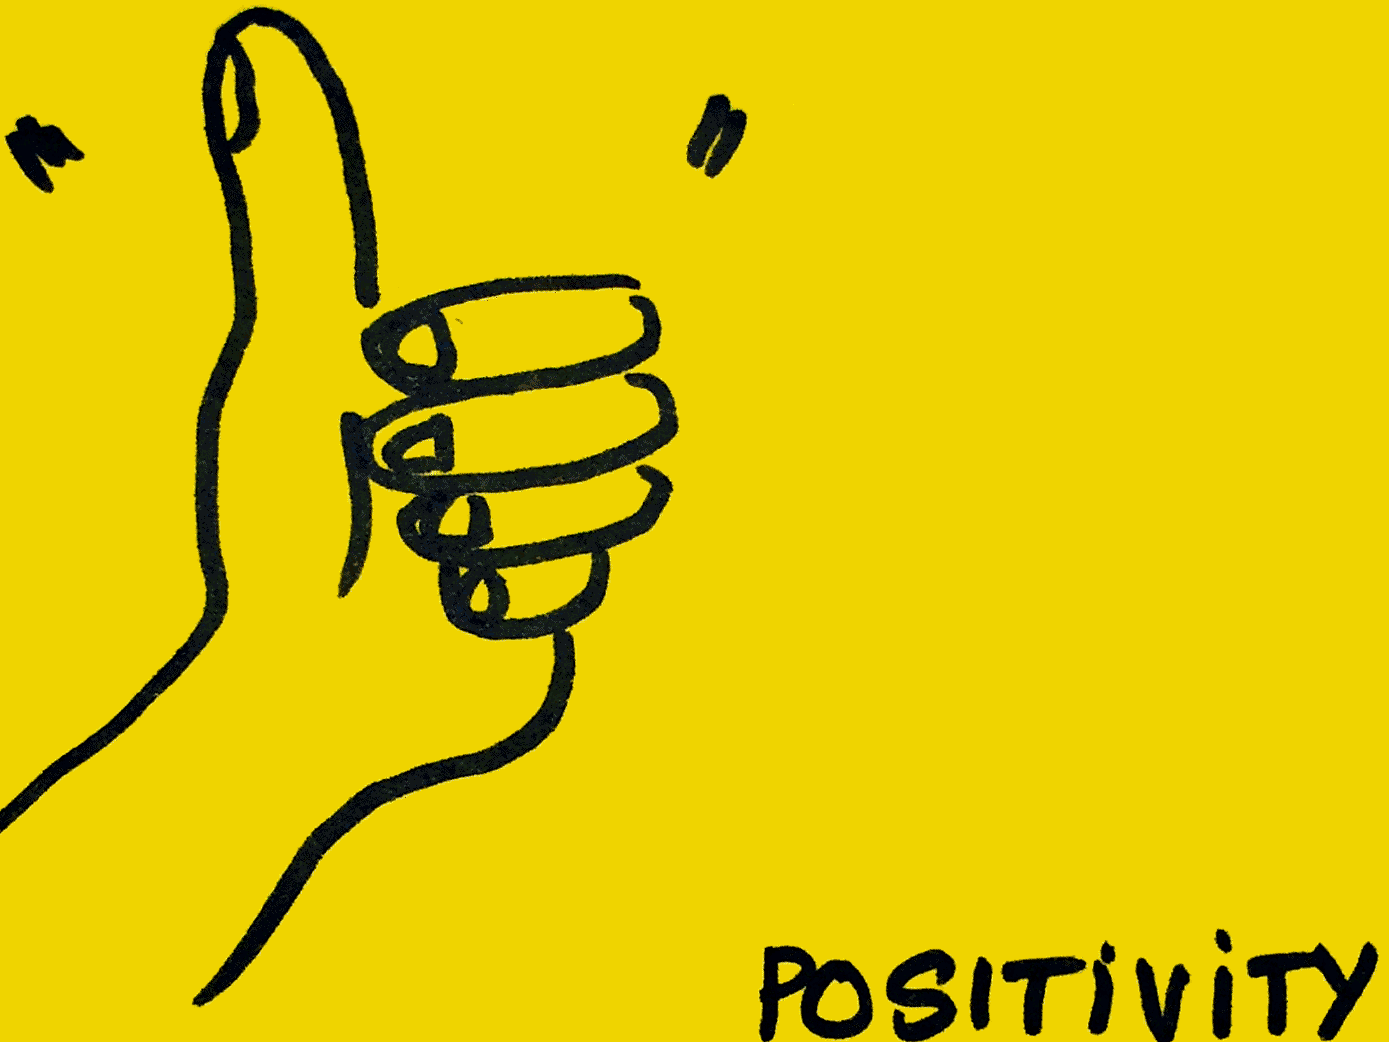 Positivity StrengthsFinder Singapore Thumbs Up